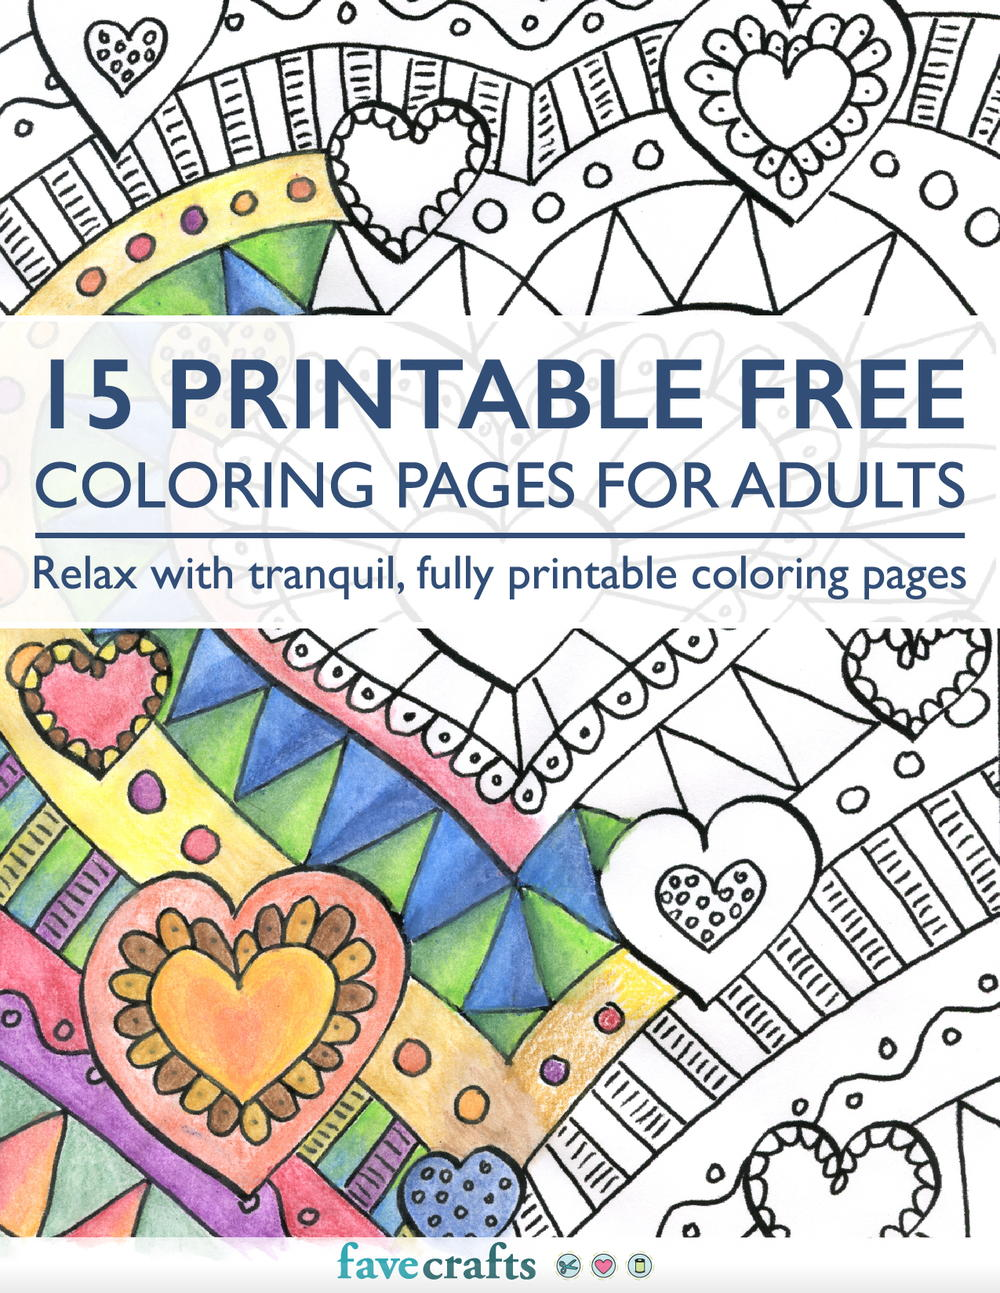 free printable coloring pages for adults zen : Our Second Free Coloring Book For Adults 15 Printable Free Coloring Pages For Adults Features A Wide Range Of Zen Inspired Coloring Pages To Download